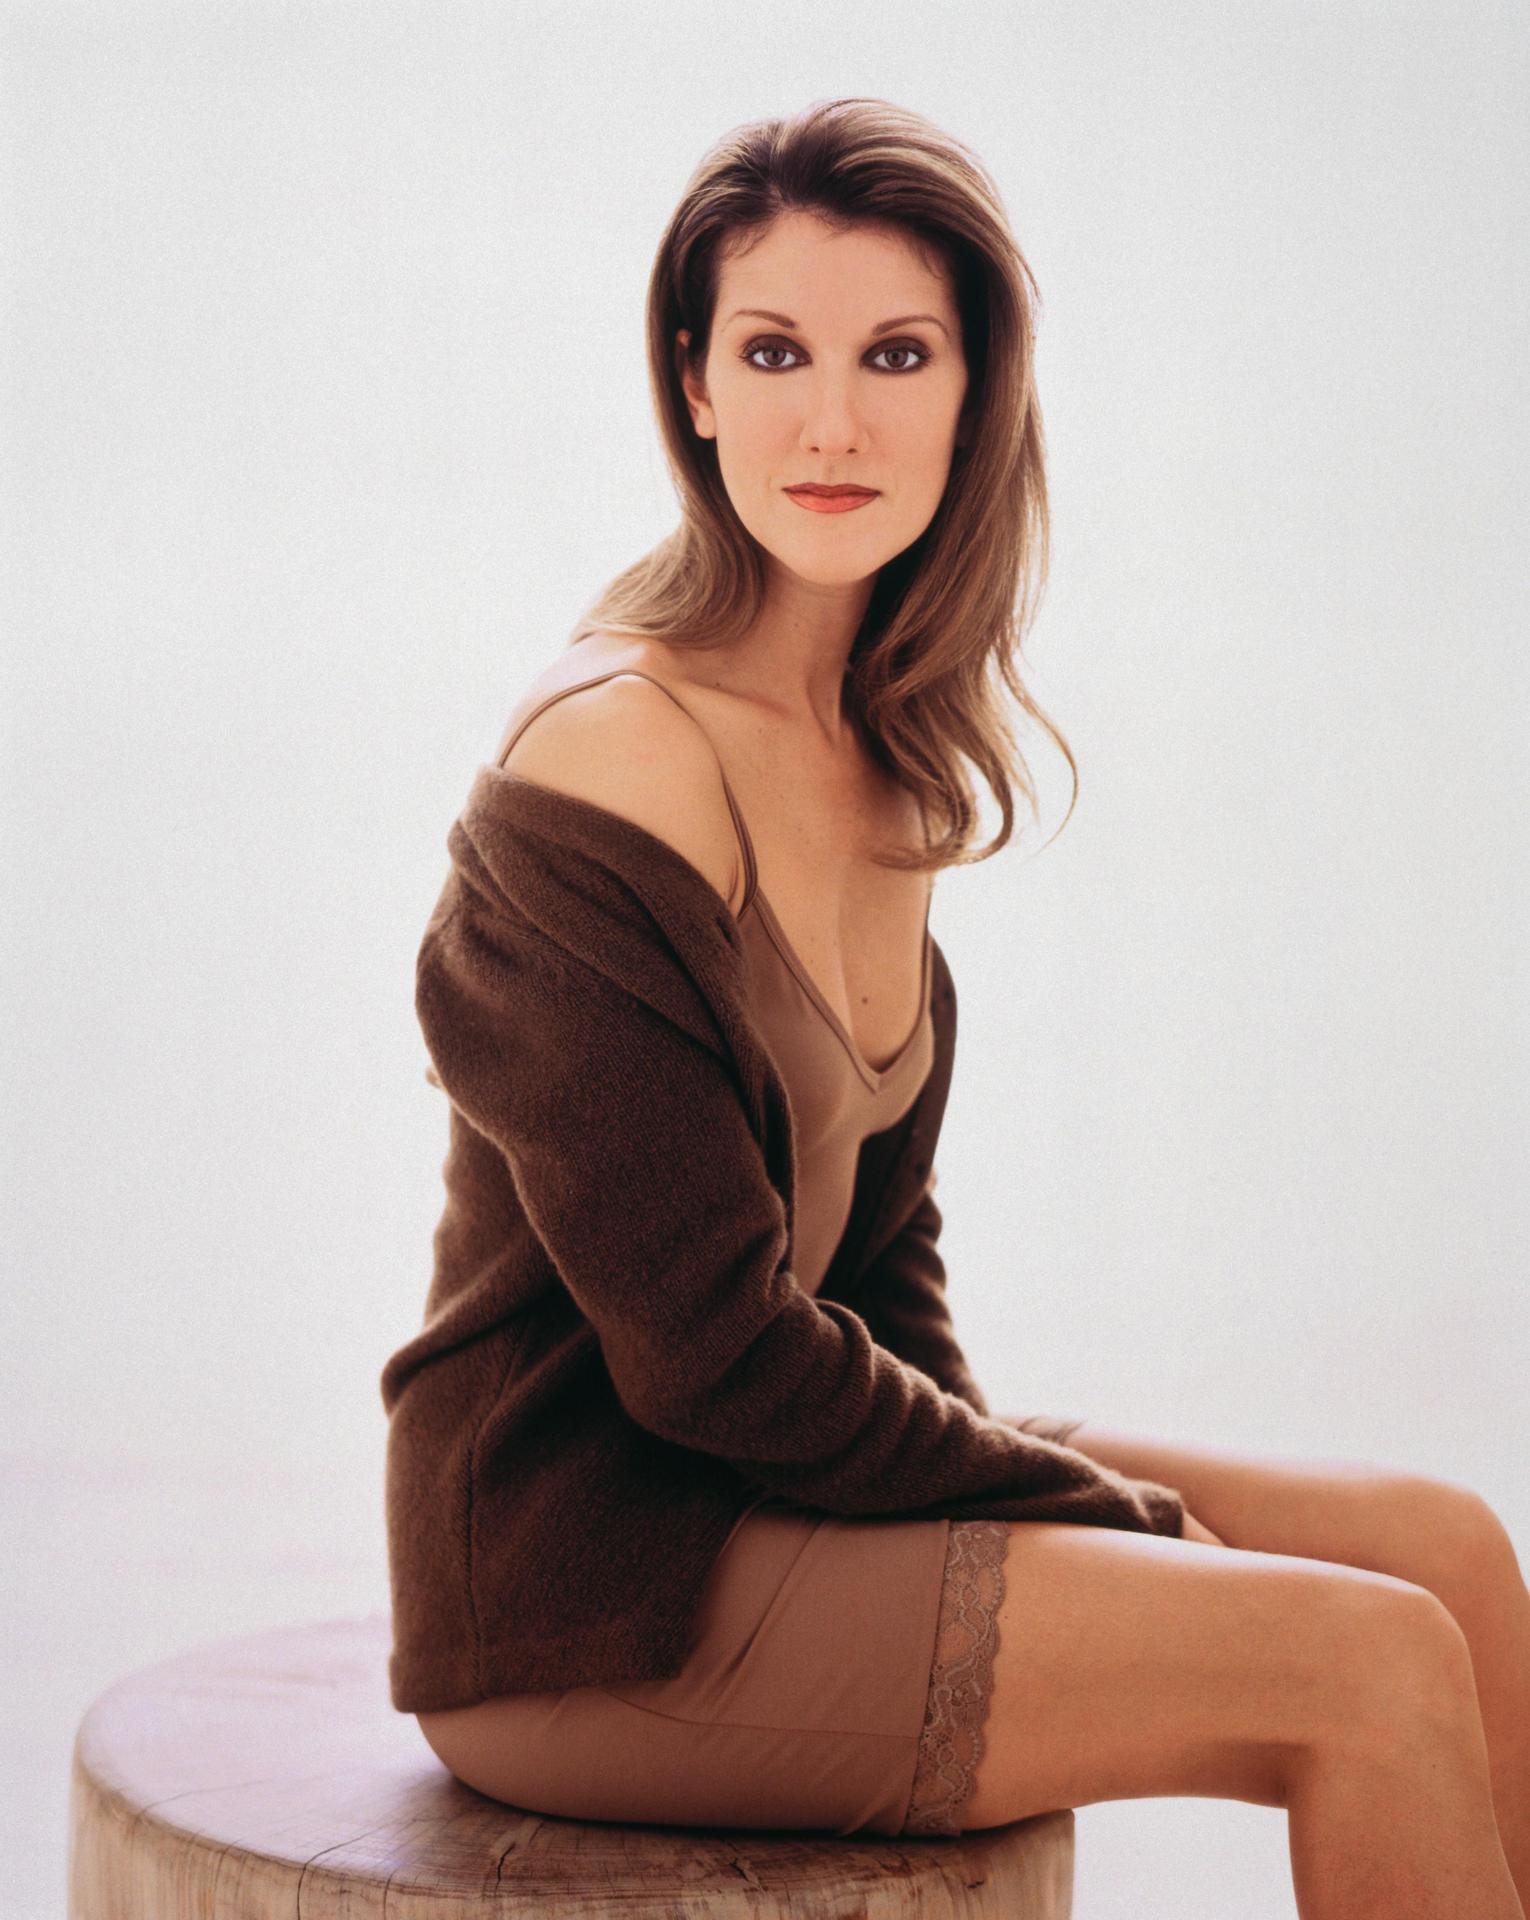 Celine Dion - Images Colection